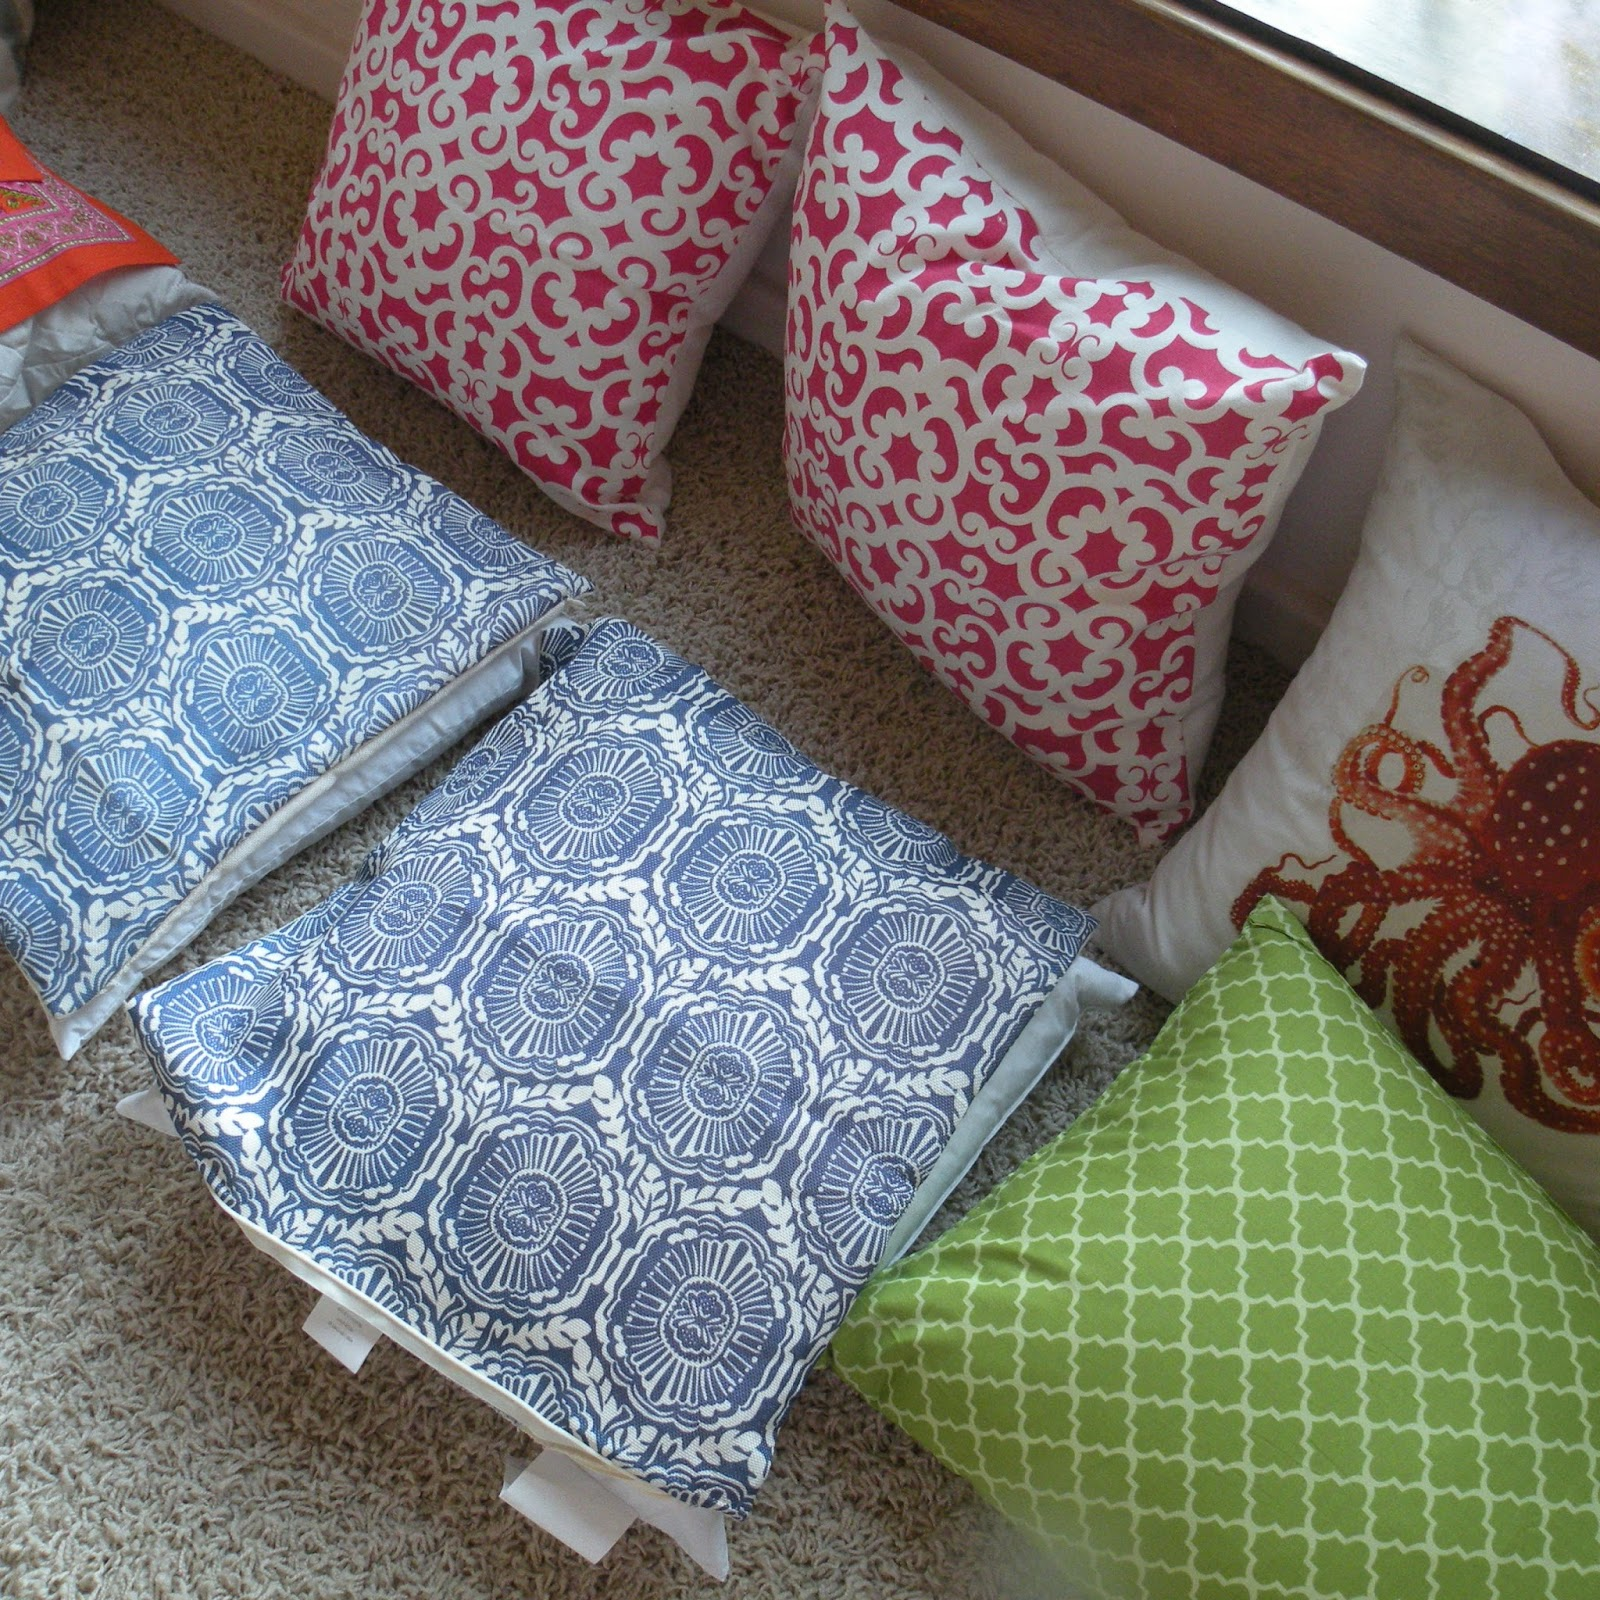 Decorative Pillows At Hobby Lobby : PURA VIDA: THE ART OF THE PATIO PILLOW